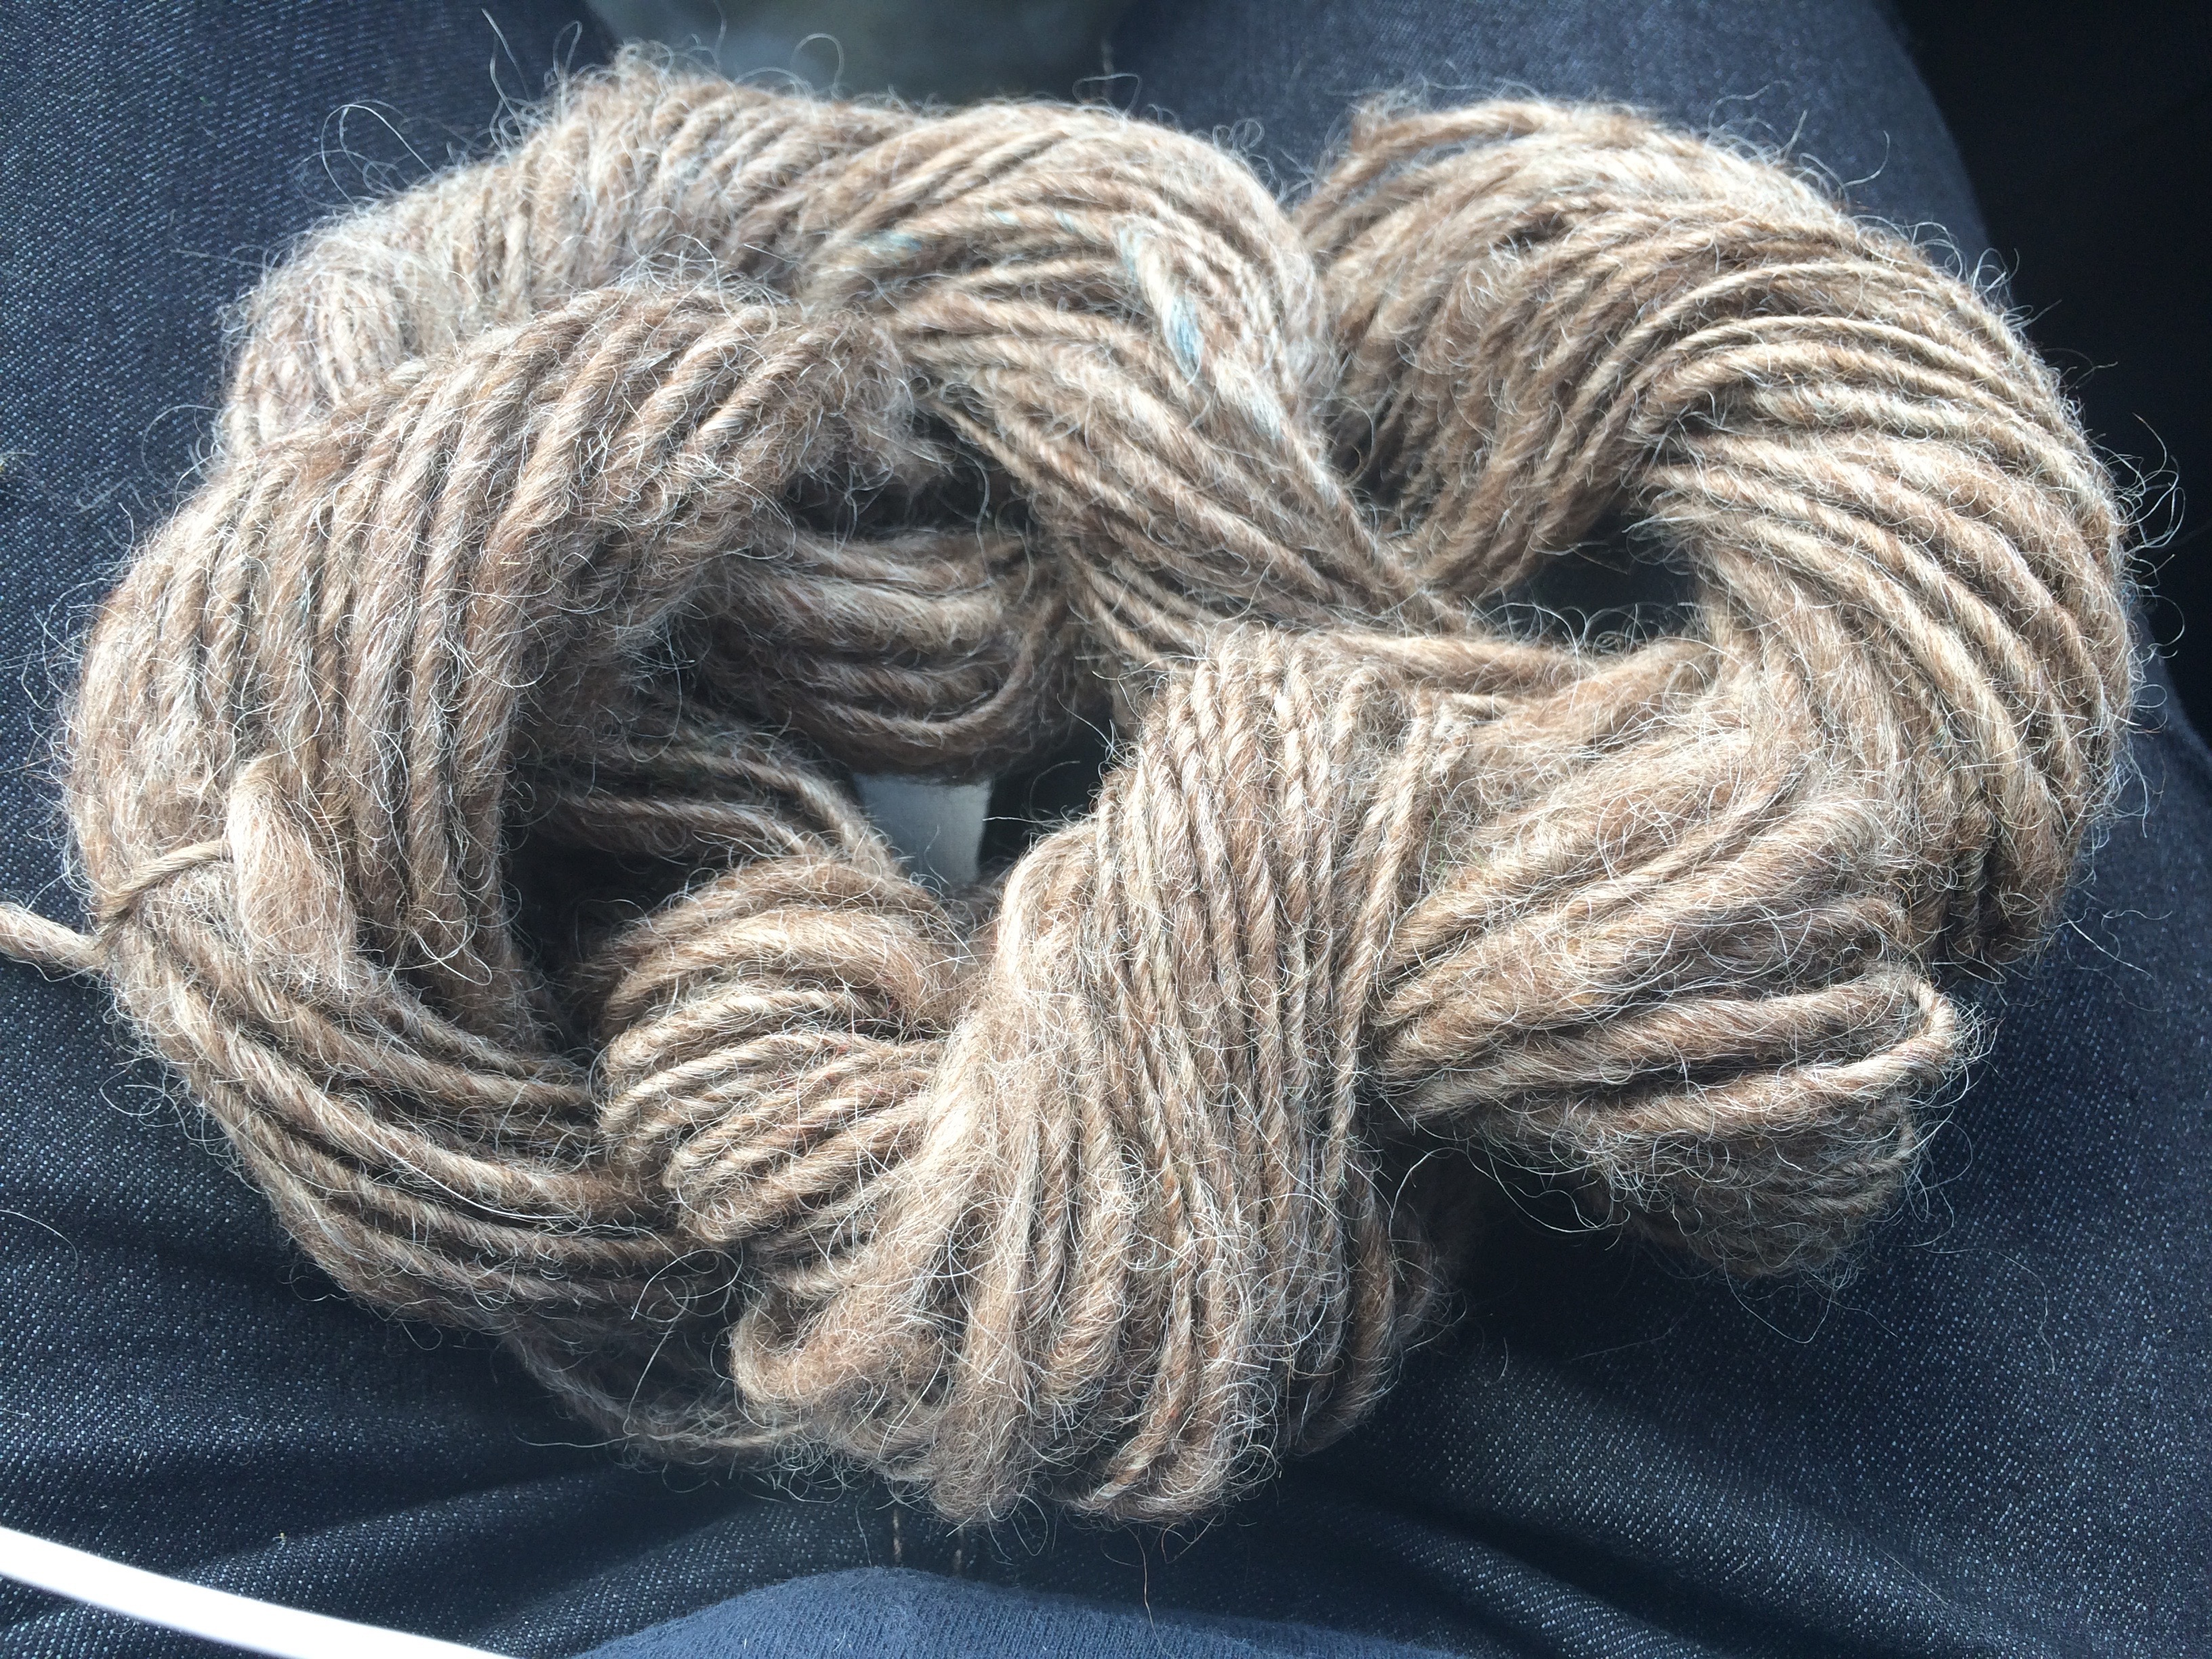 My first attempt at spinning yarn on a wheel